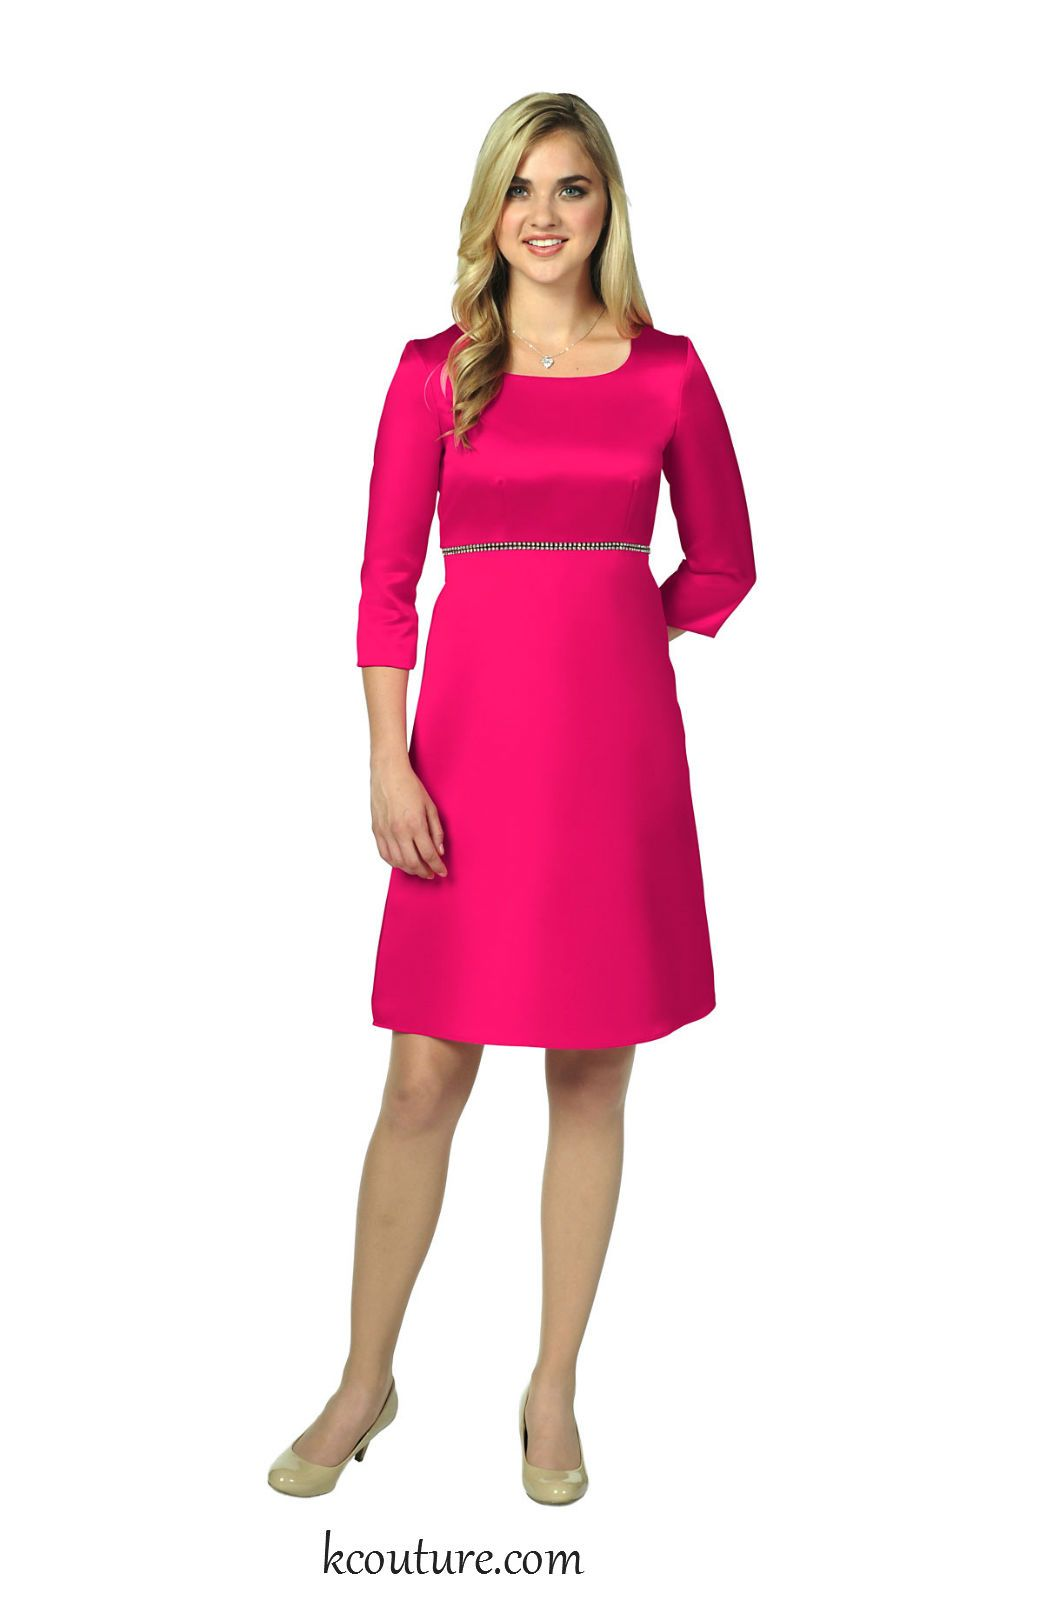 Fushia deluxe satin knee length bridesmaid dress with sleeves